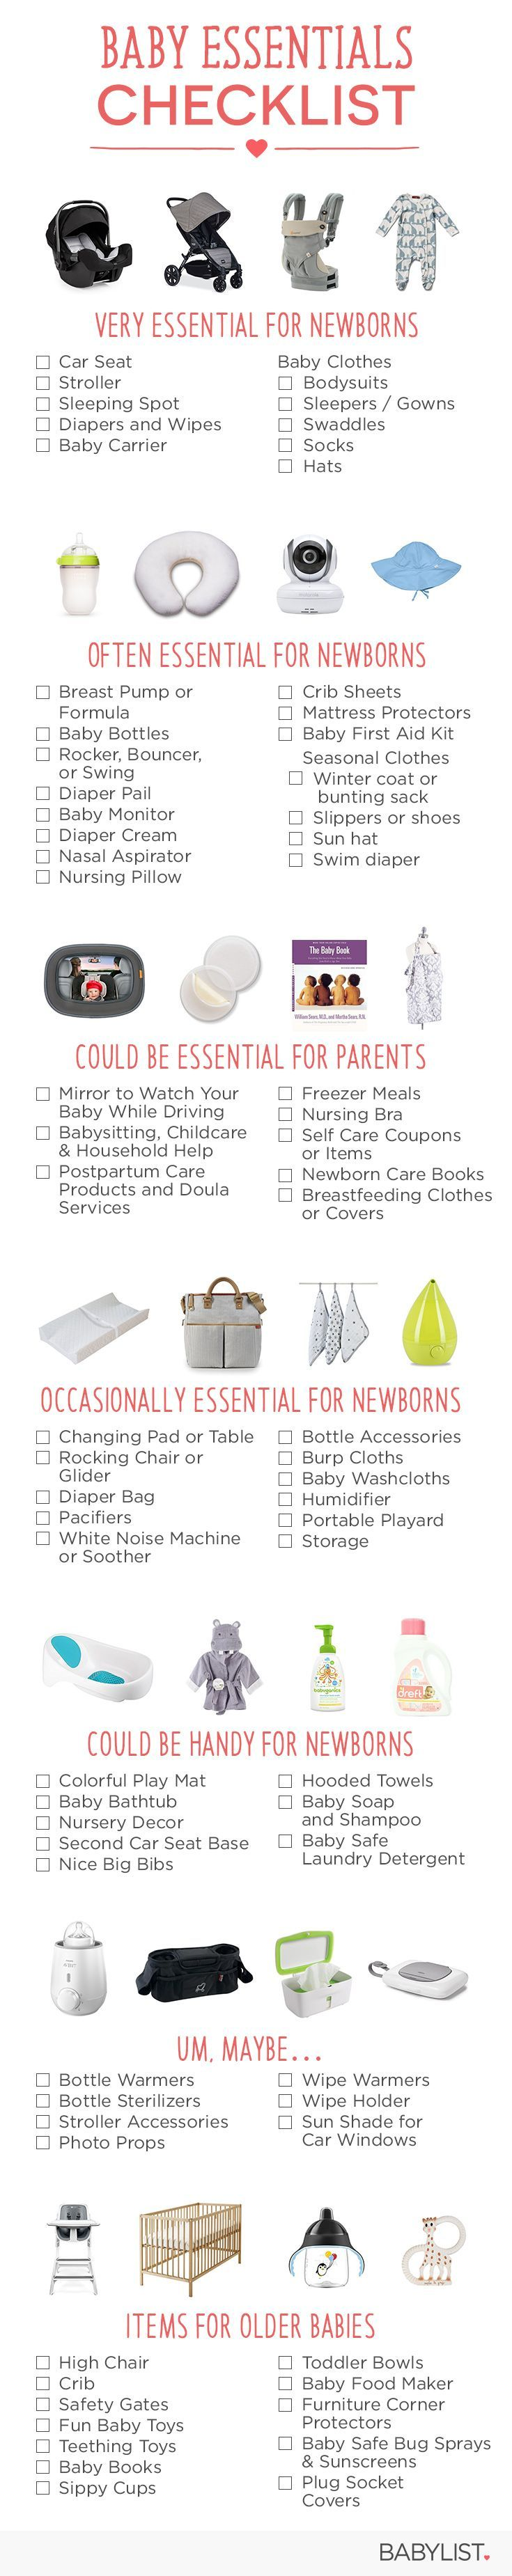 how to build the perfect baby registry for you - Baby Room Checklist